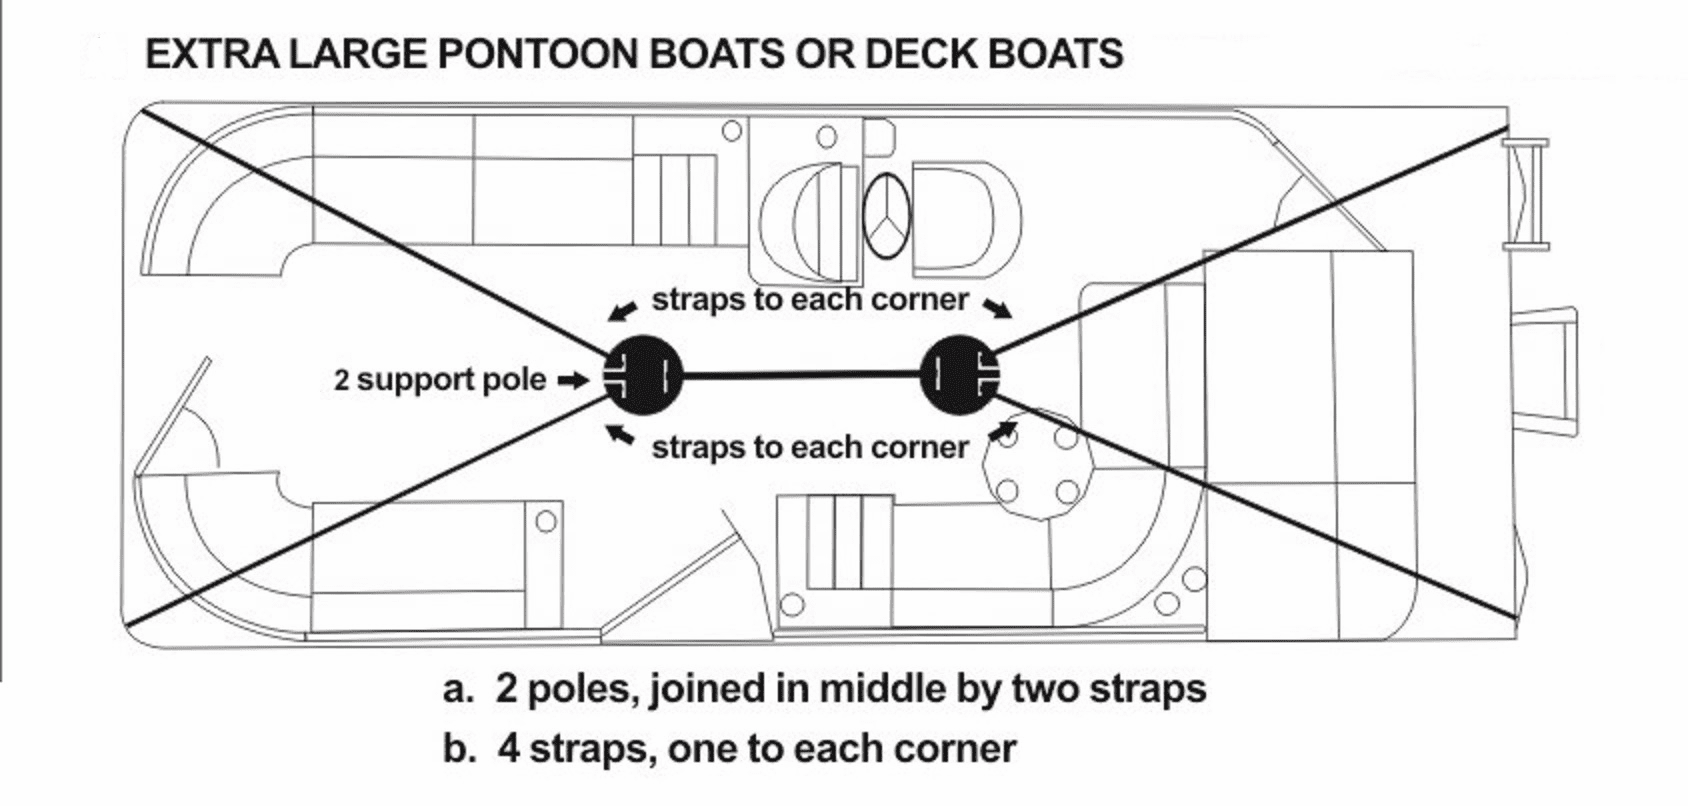 VORTEX DOUBLE PONTOON / DECK BOAT SUPPORT POLE SYSTEM<BR>**OUT OF STOCK**